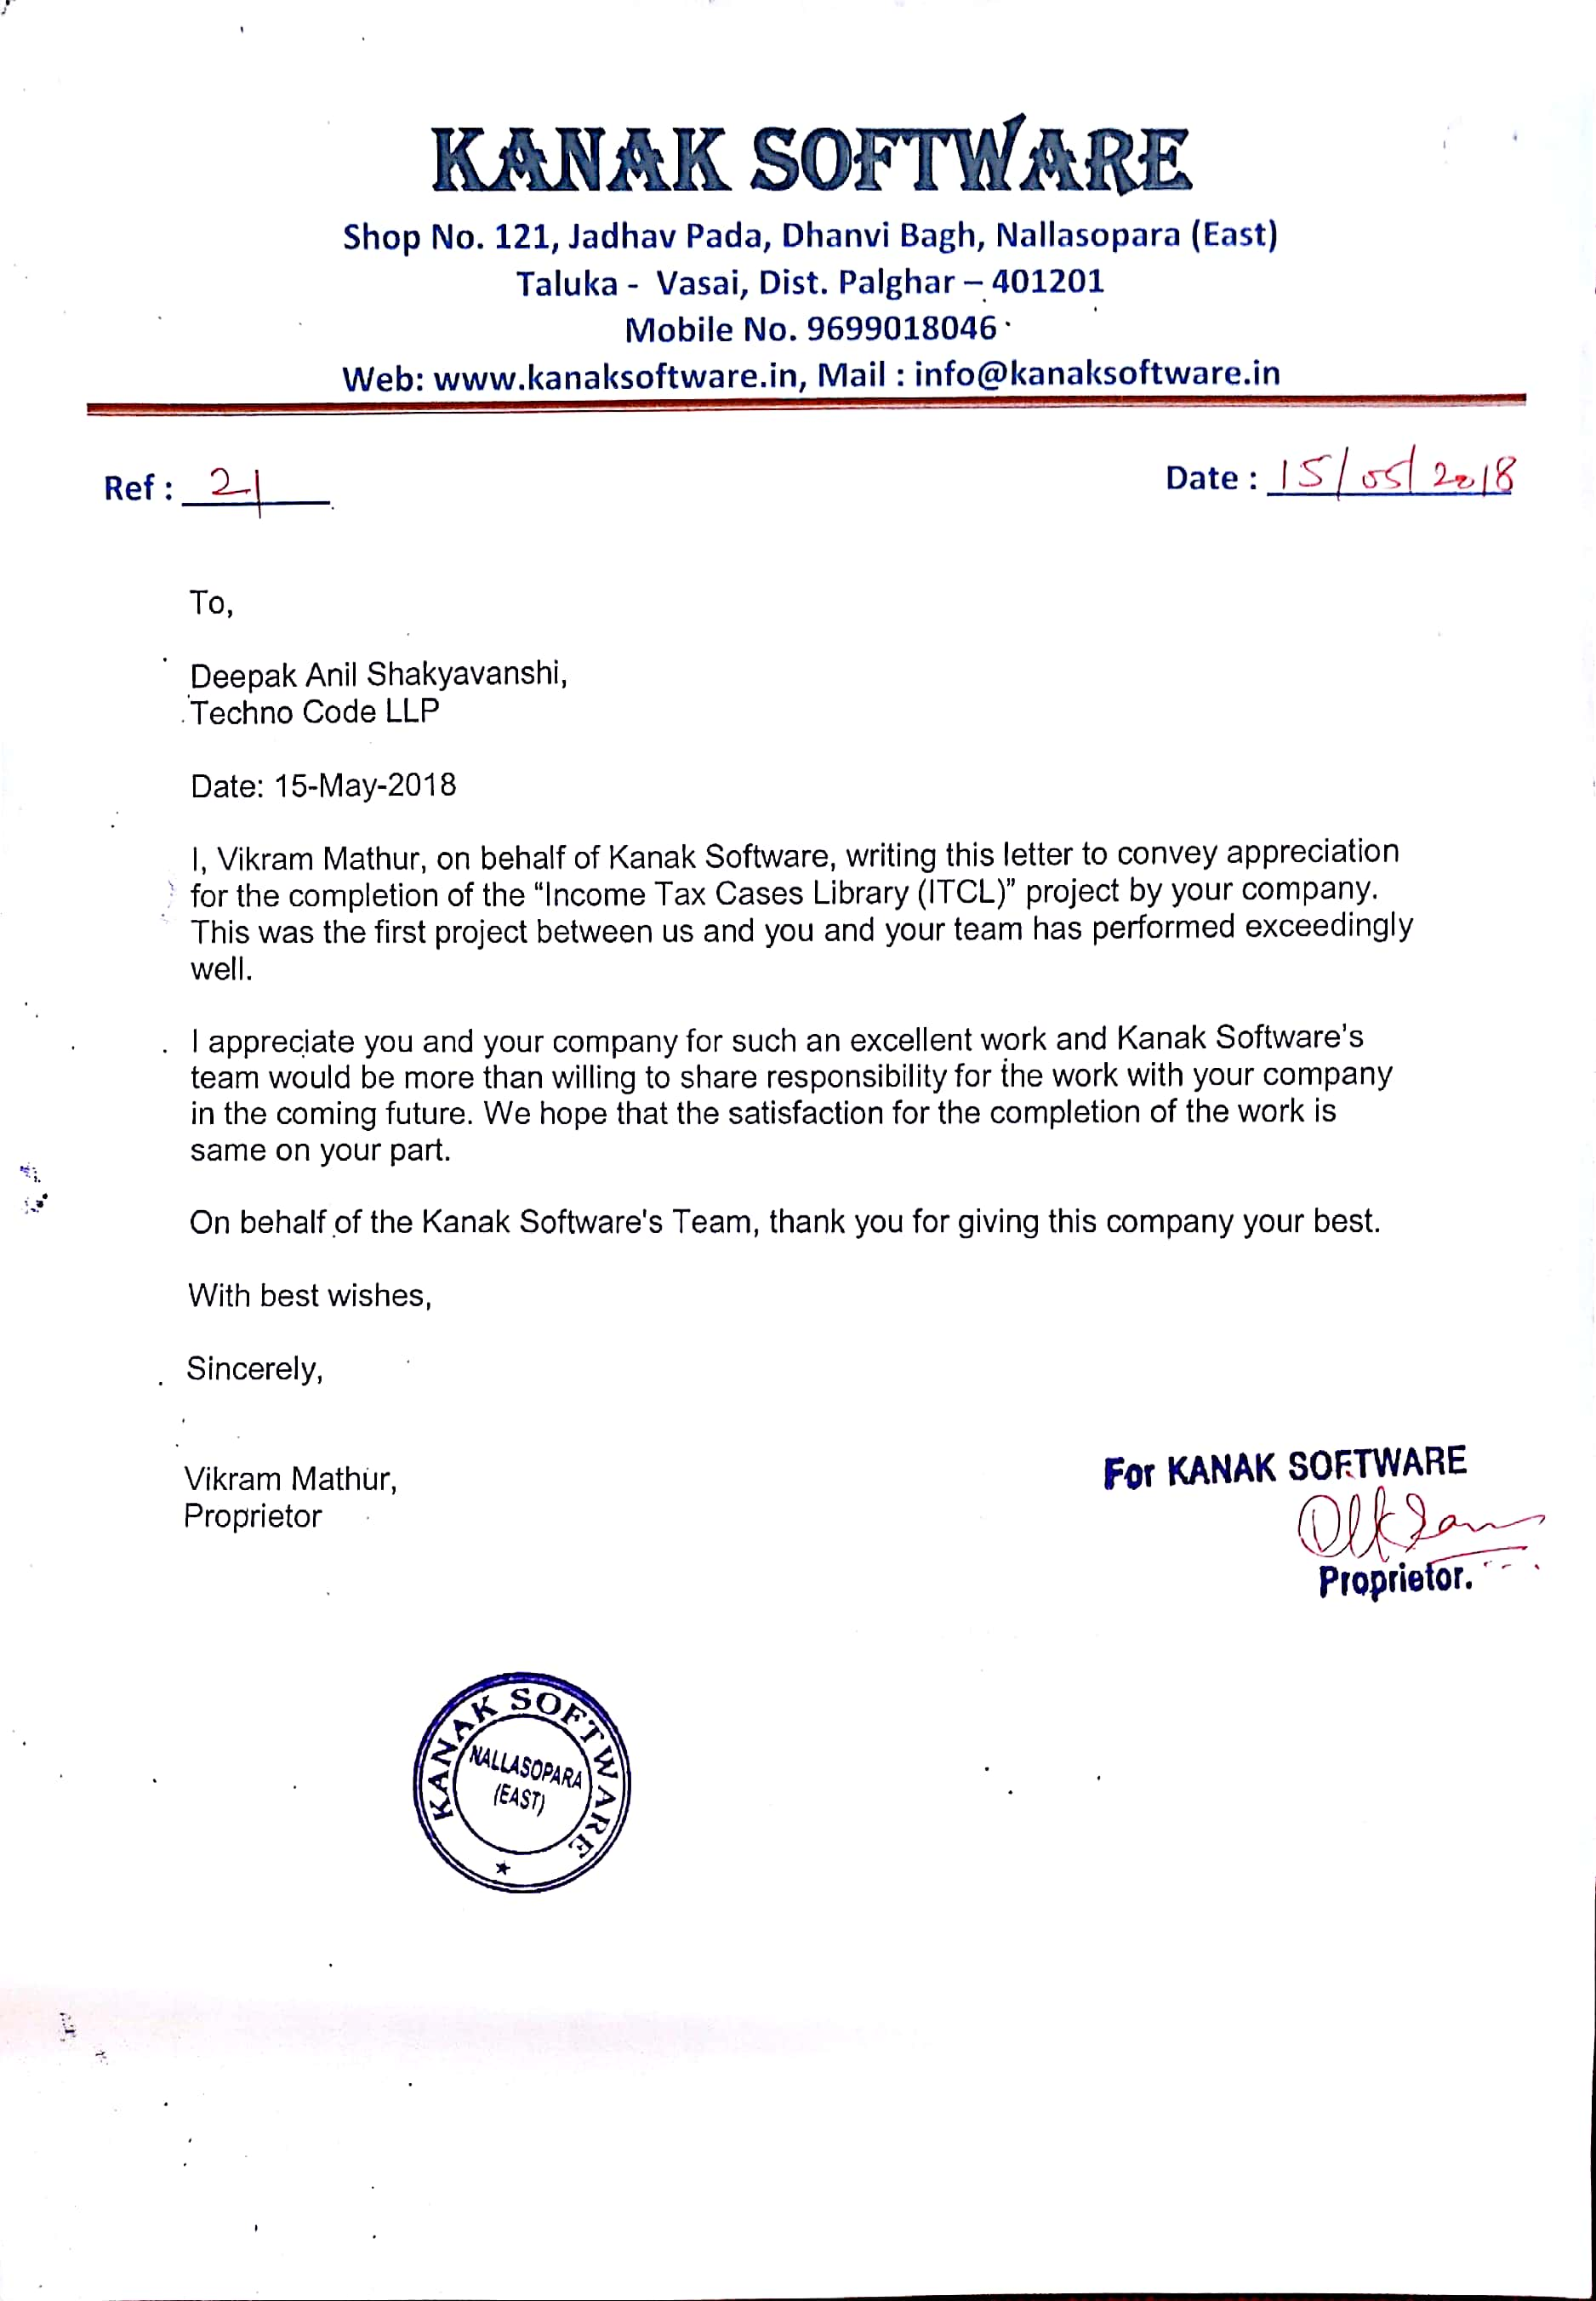 Appreciation Letter from Kanak Software (ITCL Project)